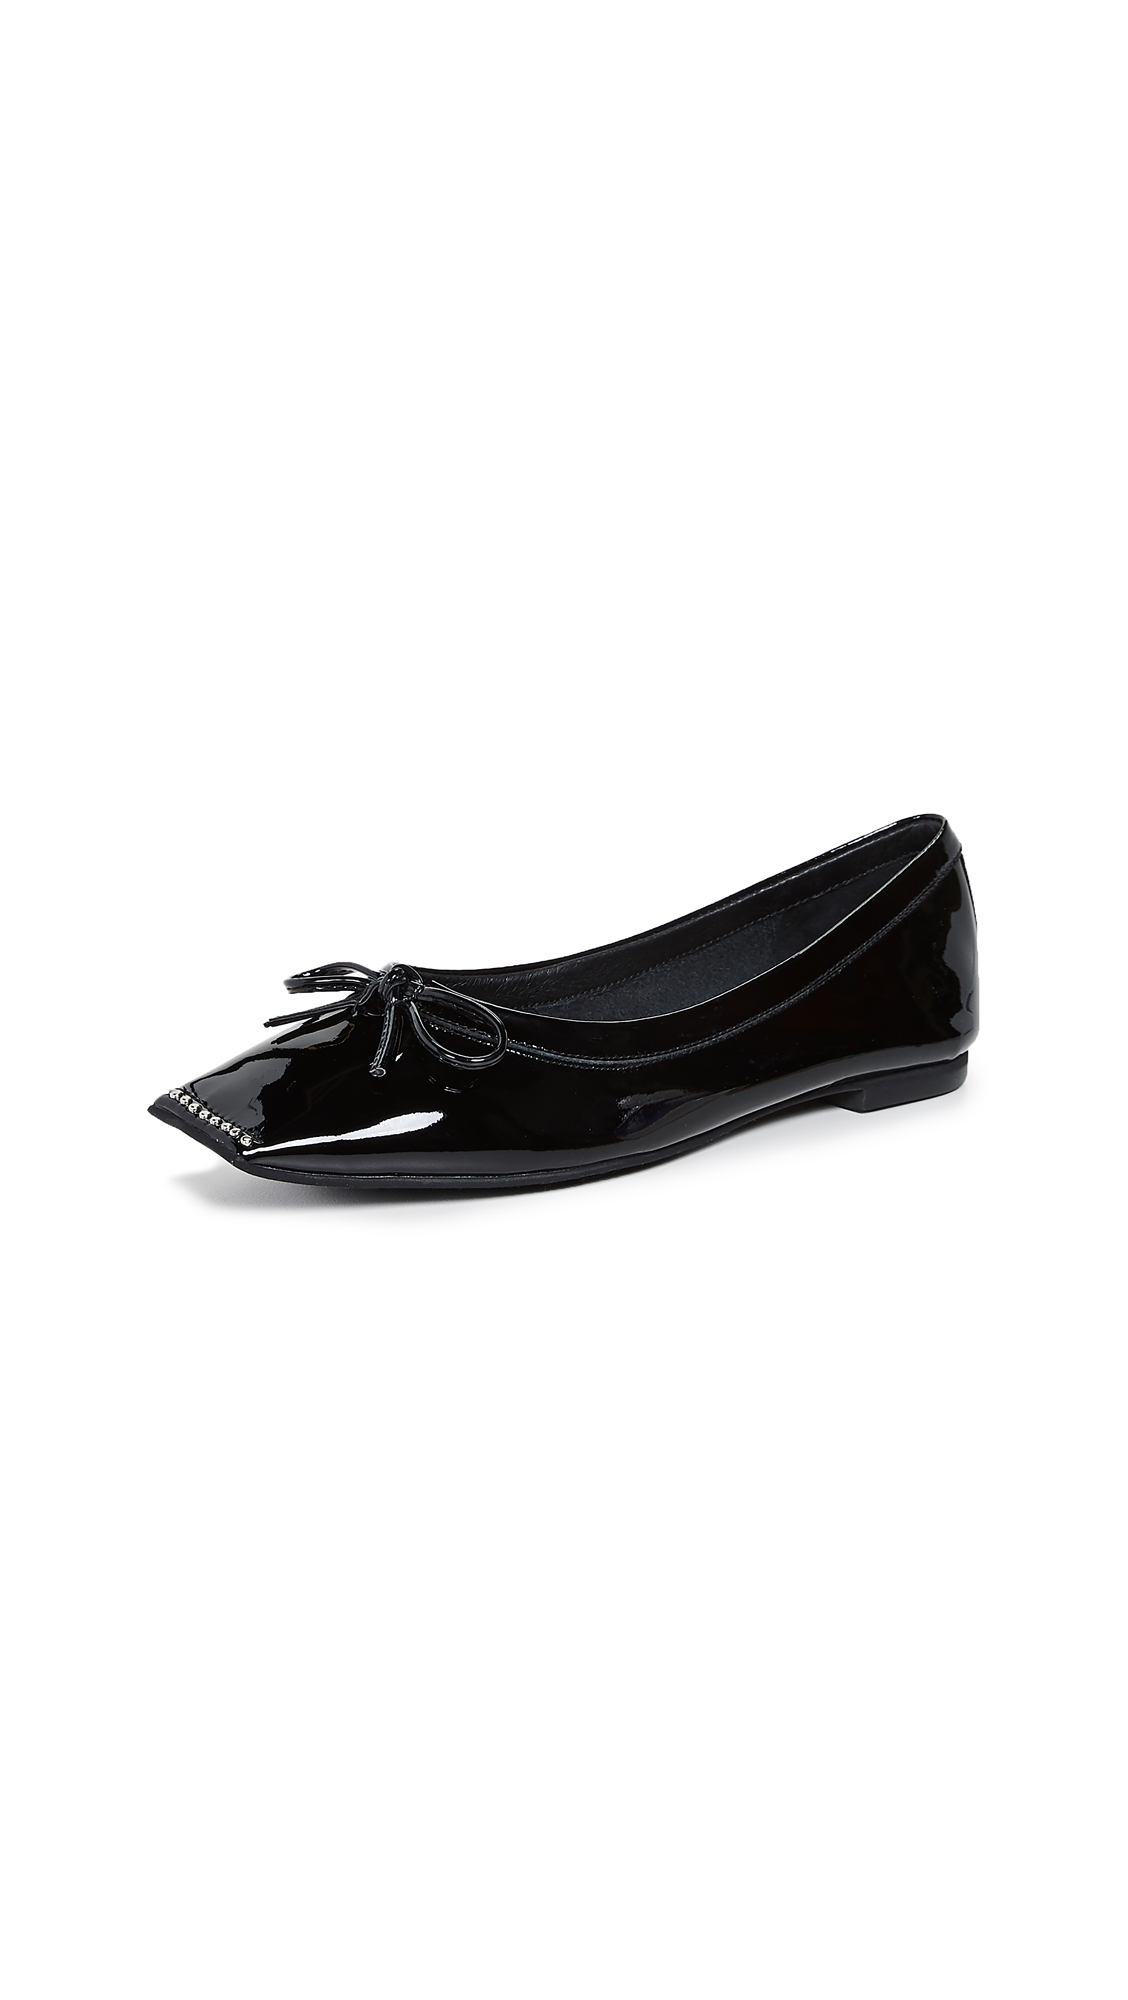 Jeffrey Campbell Achira Square Toe Flats - Black